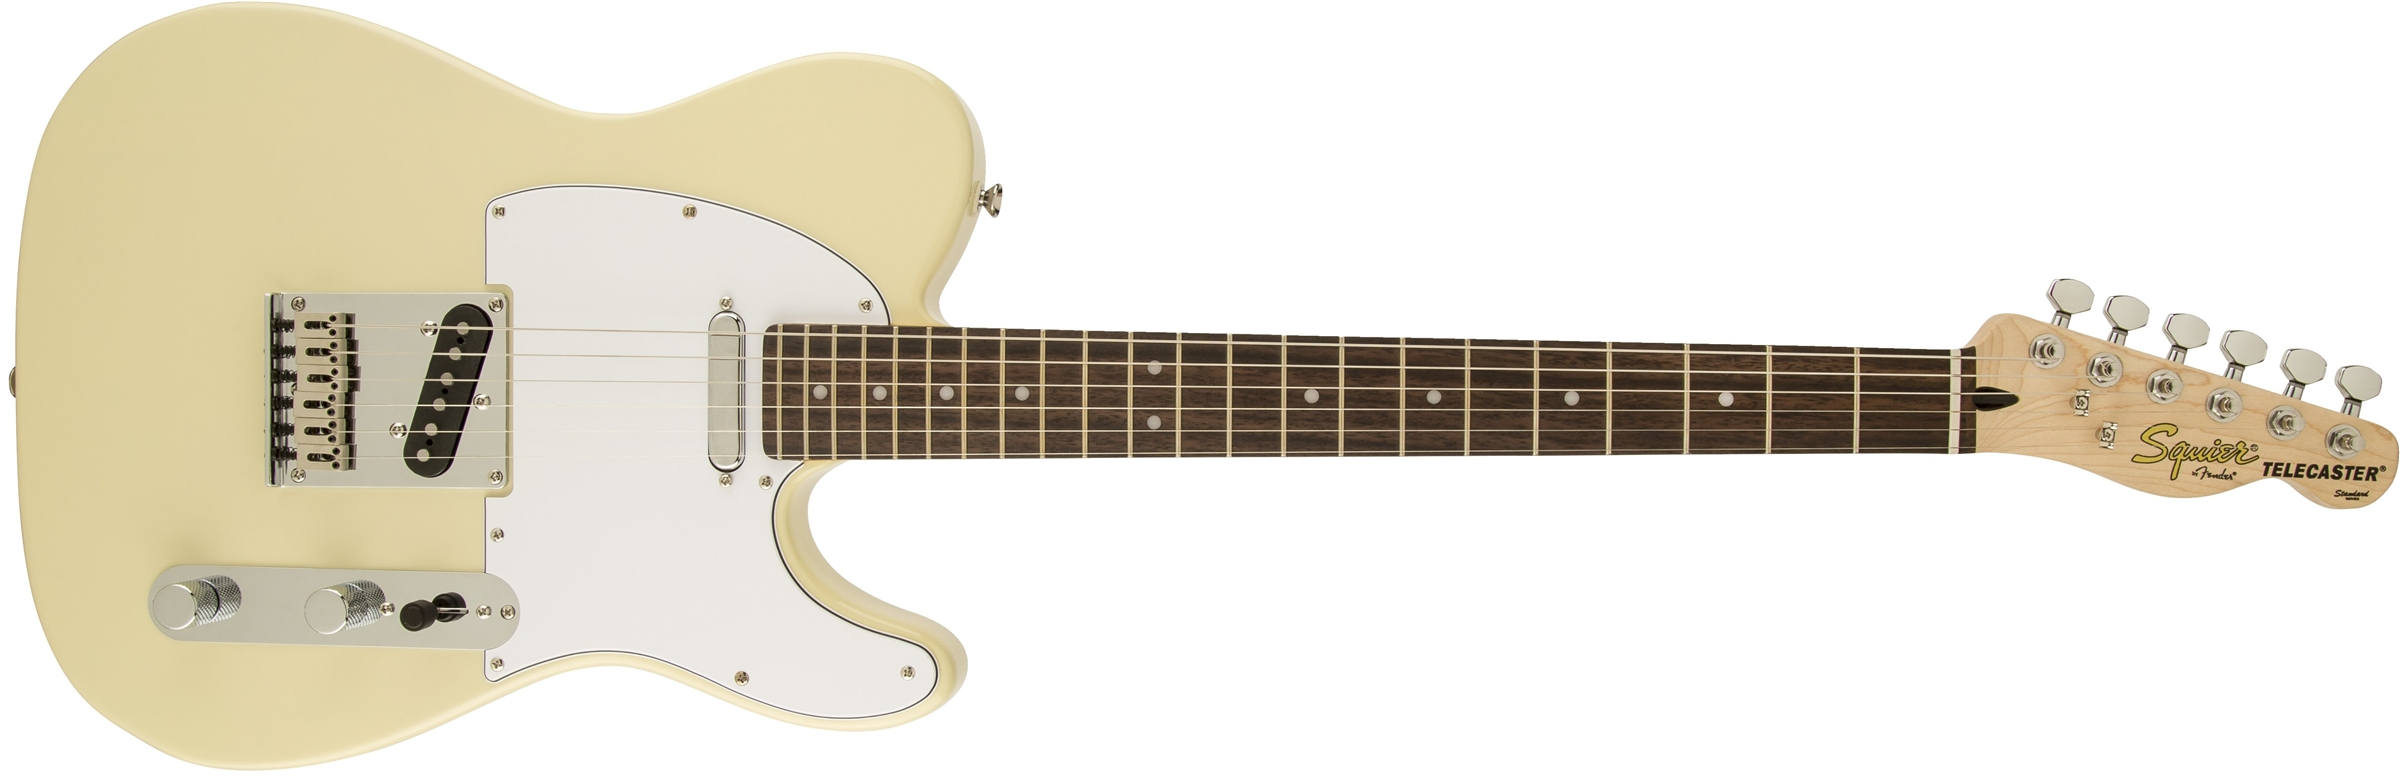 dating squier telecaster Fender mij e series '84-'87 discussion in '  but i think that an e series without a squier logo would be a model made for the domestic japanese market.